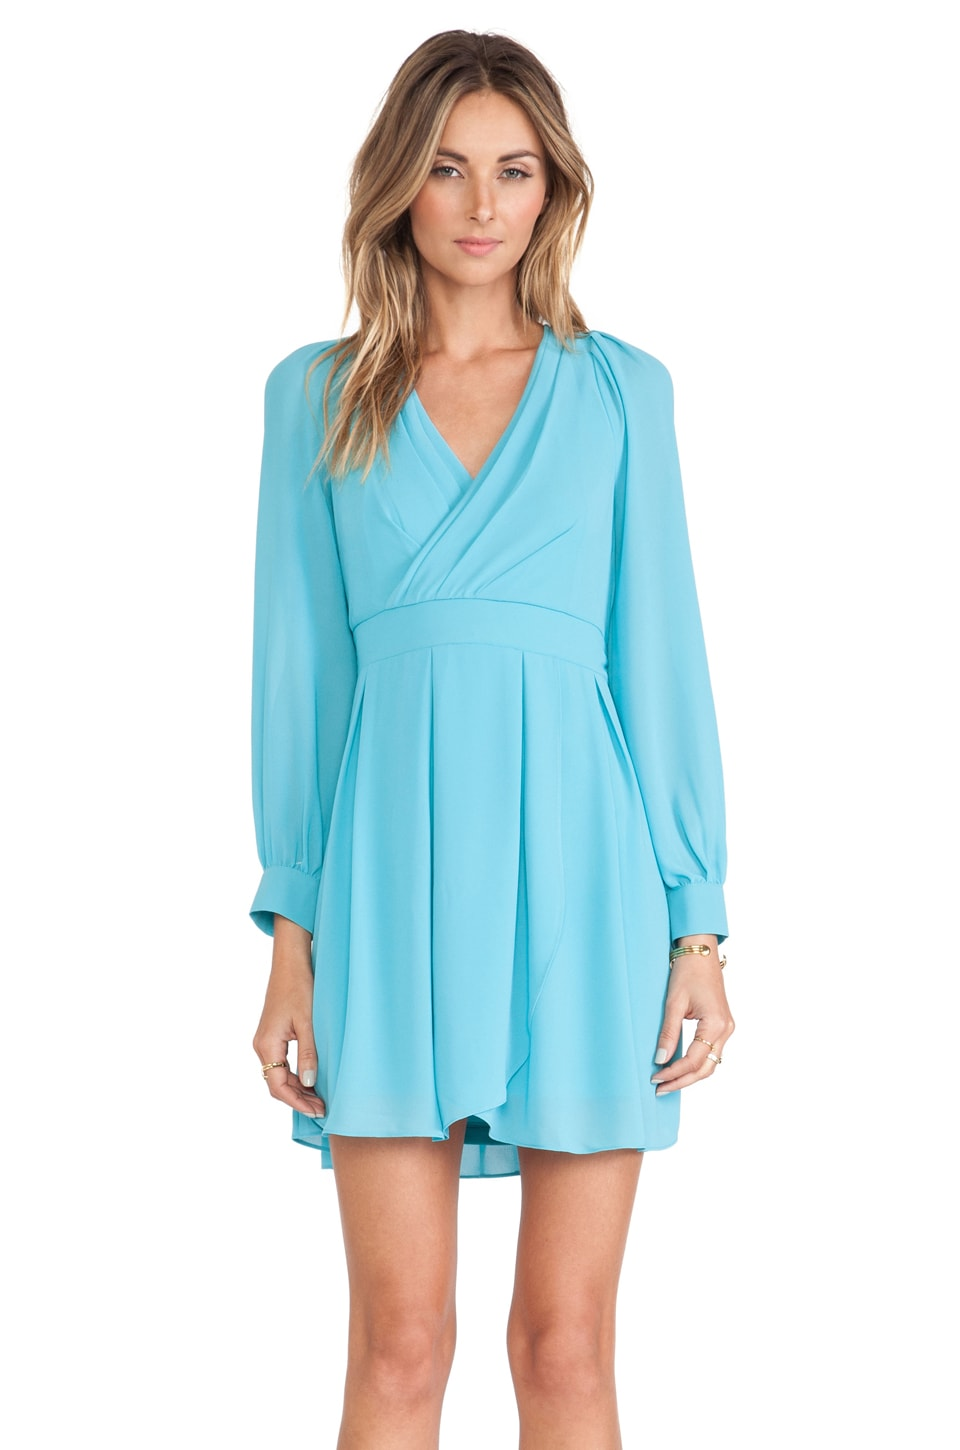 TFNC London Iman Long Sleeve Dress in Turquoise